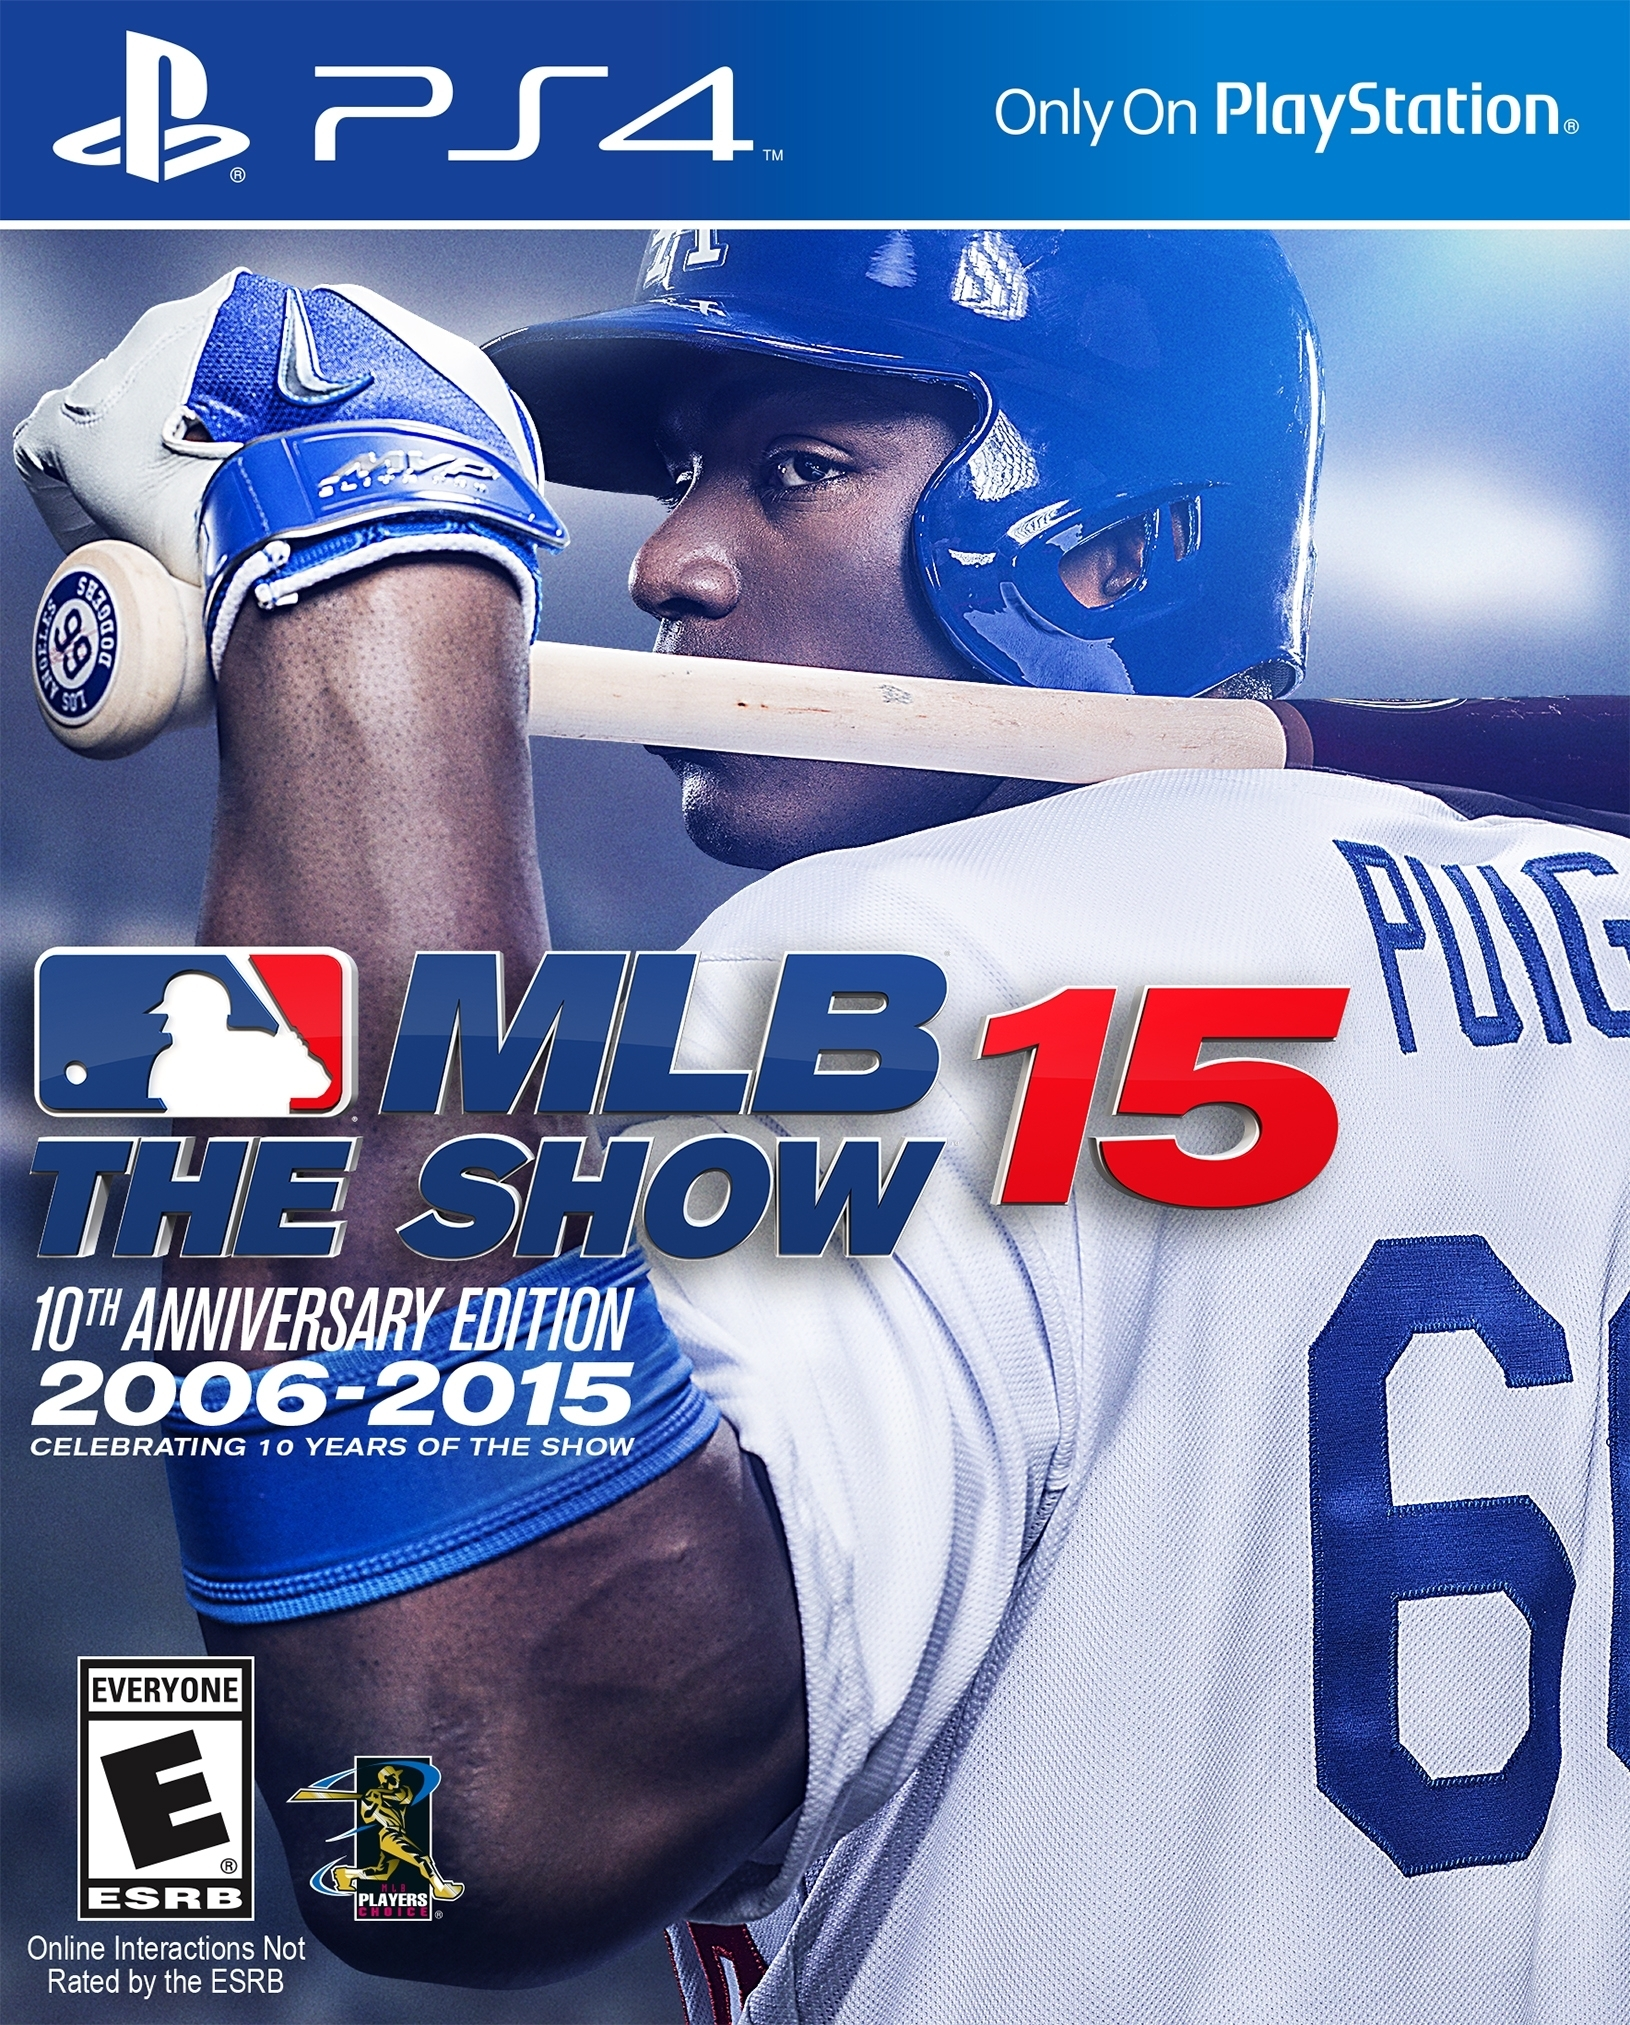 MLB 15 The Show Anniversary Edition (PS4)